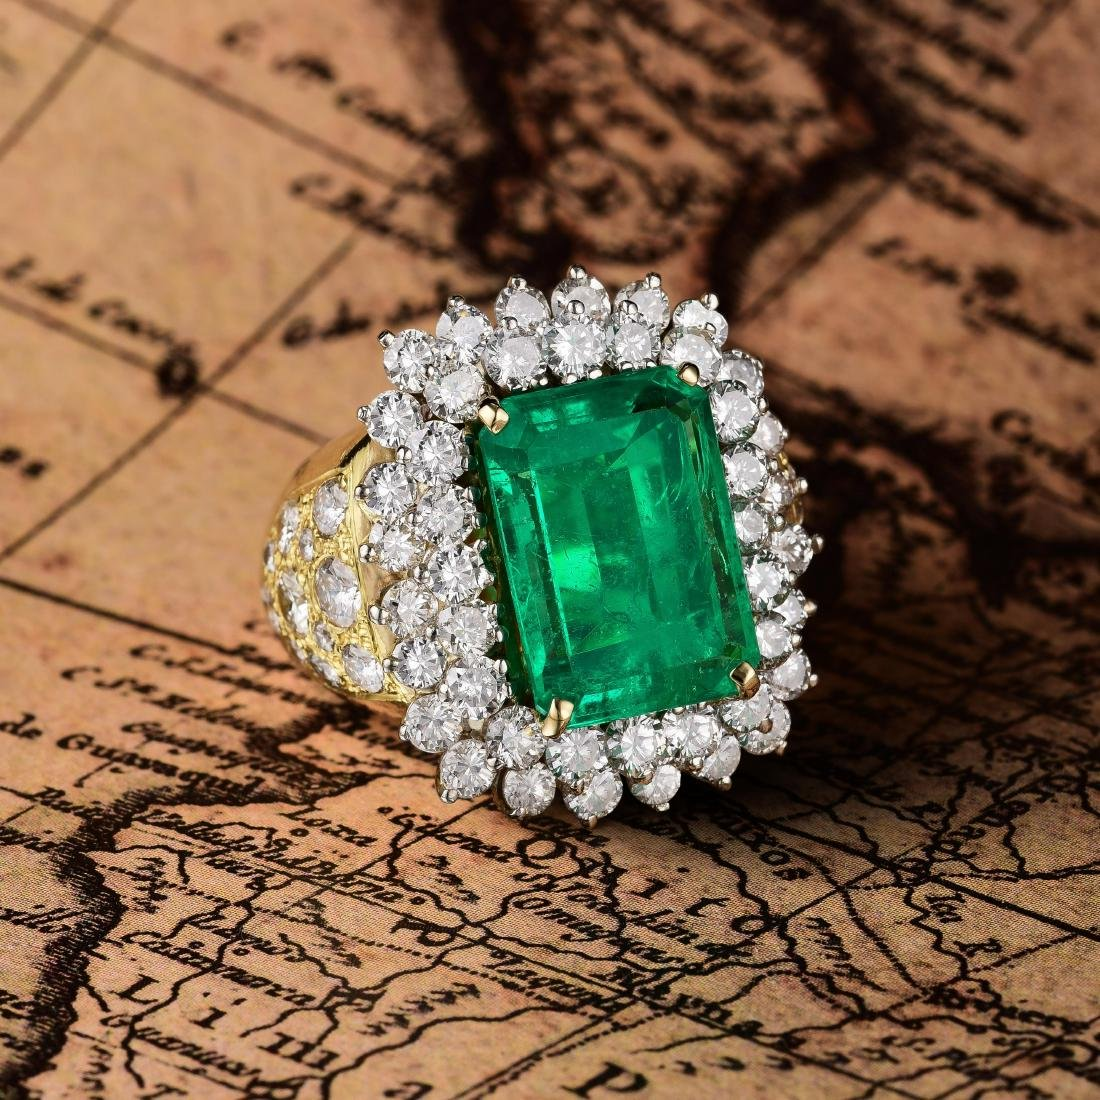 A 7.48-Carat Colombian Emerald and Diamond Ring